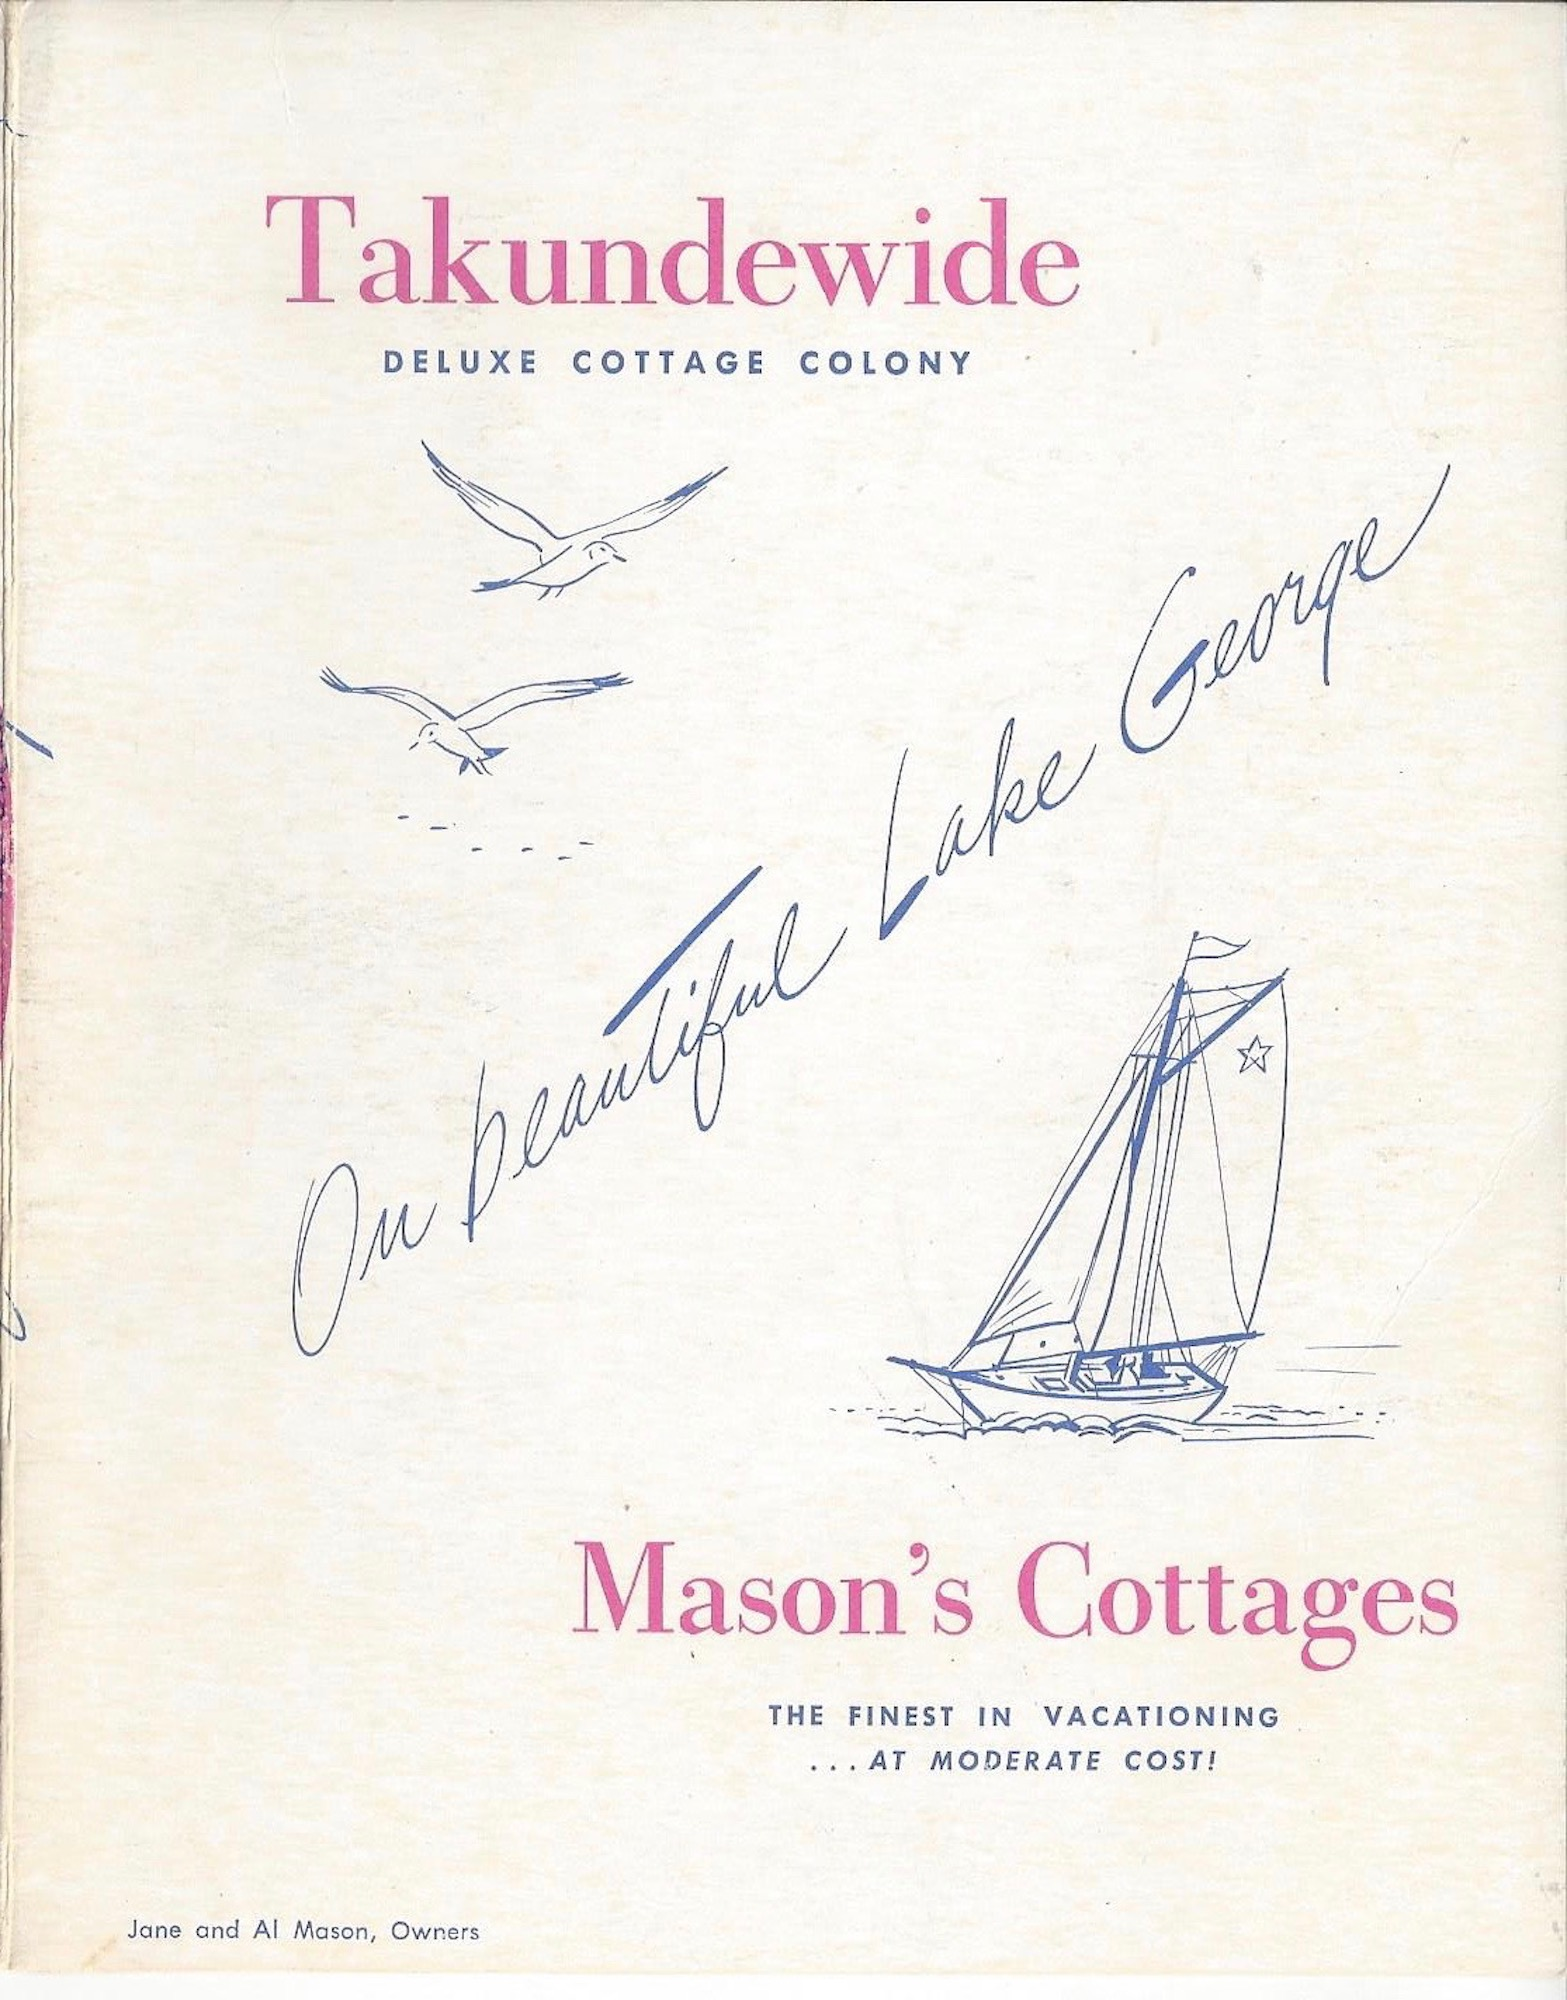 Takundewide and Mason's Cottages Brochure, Circa 1954